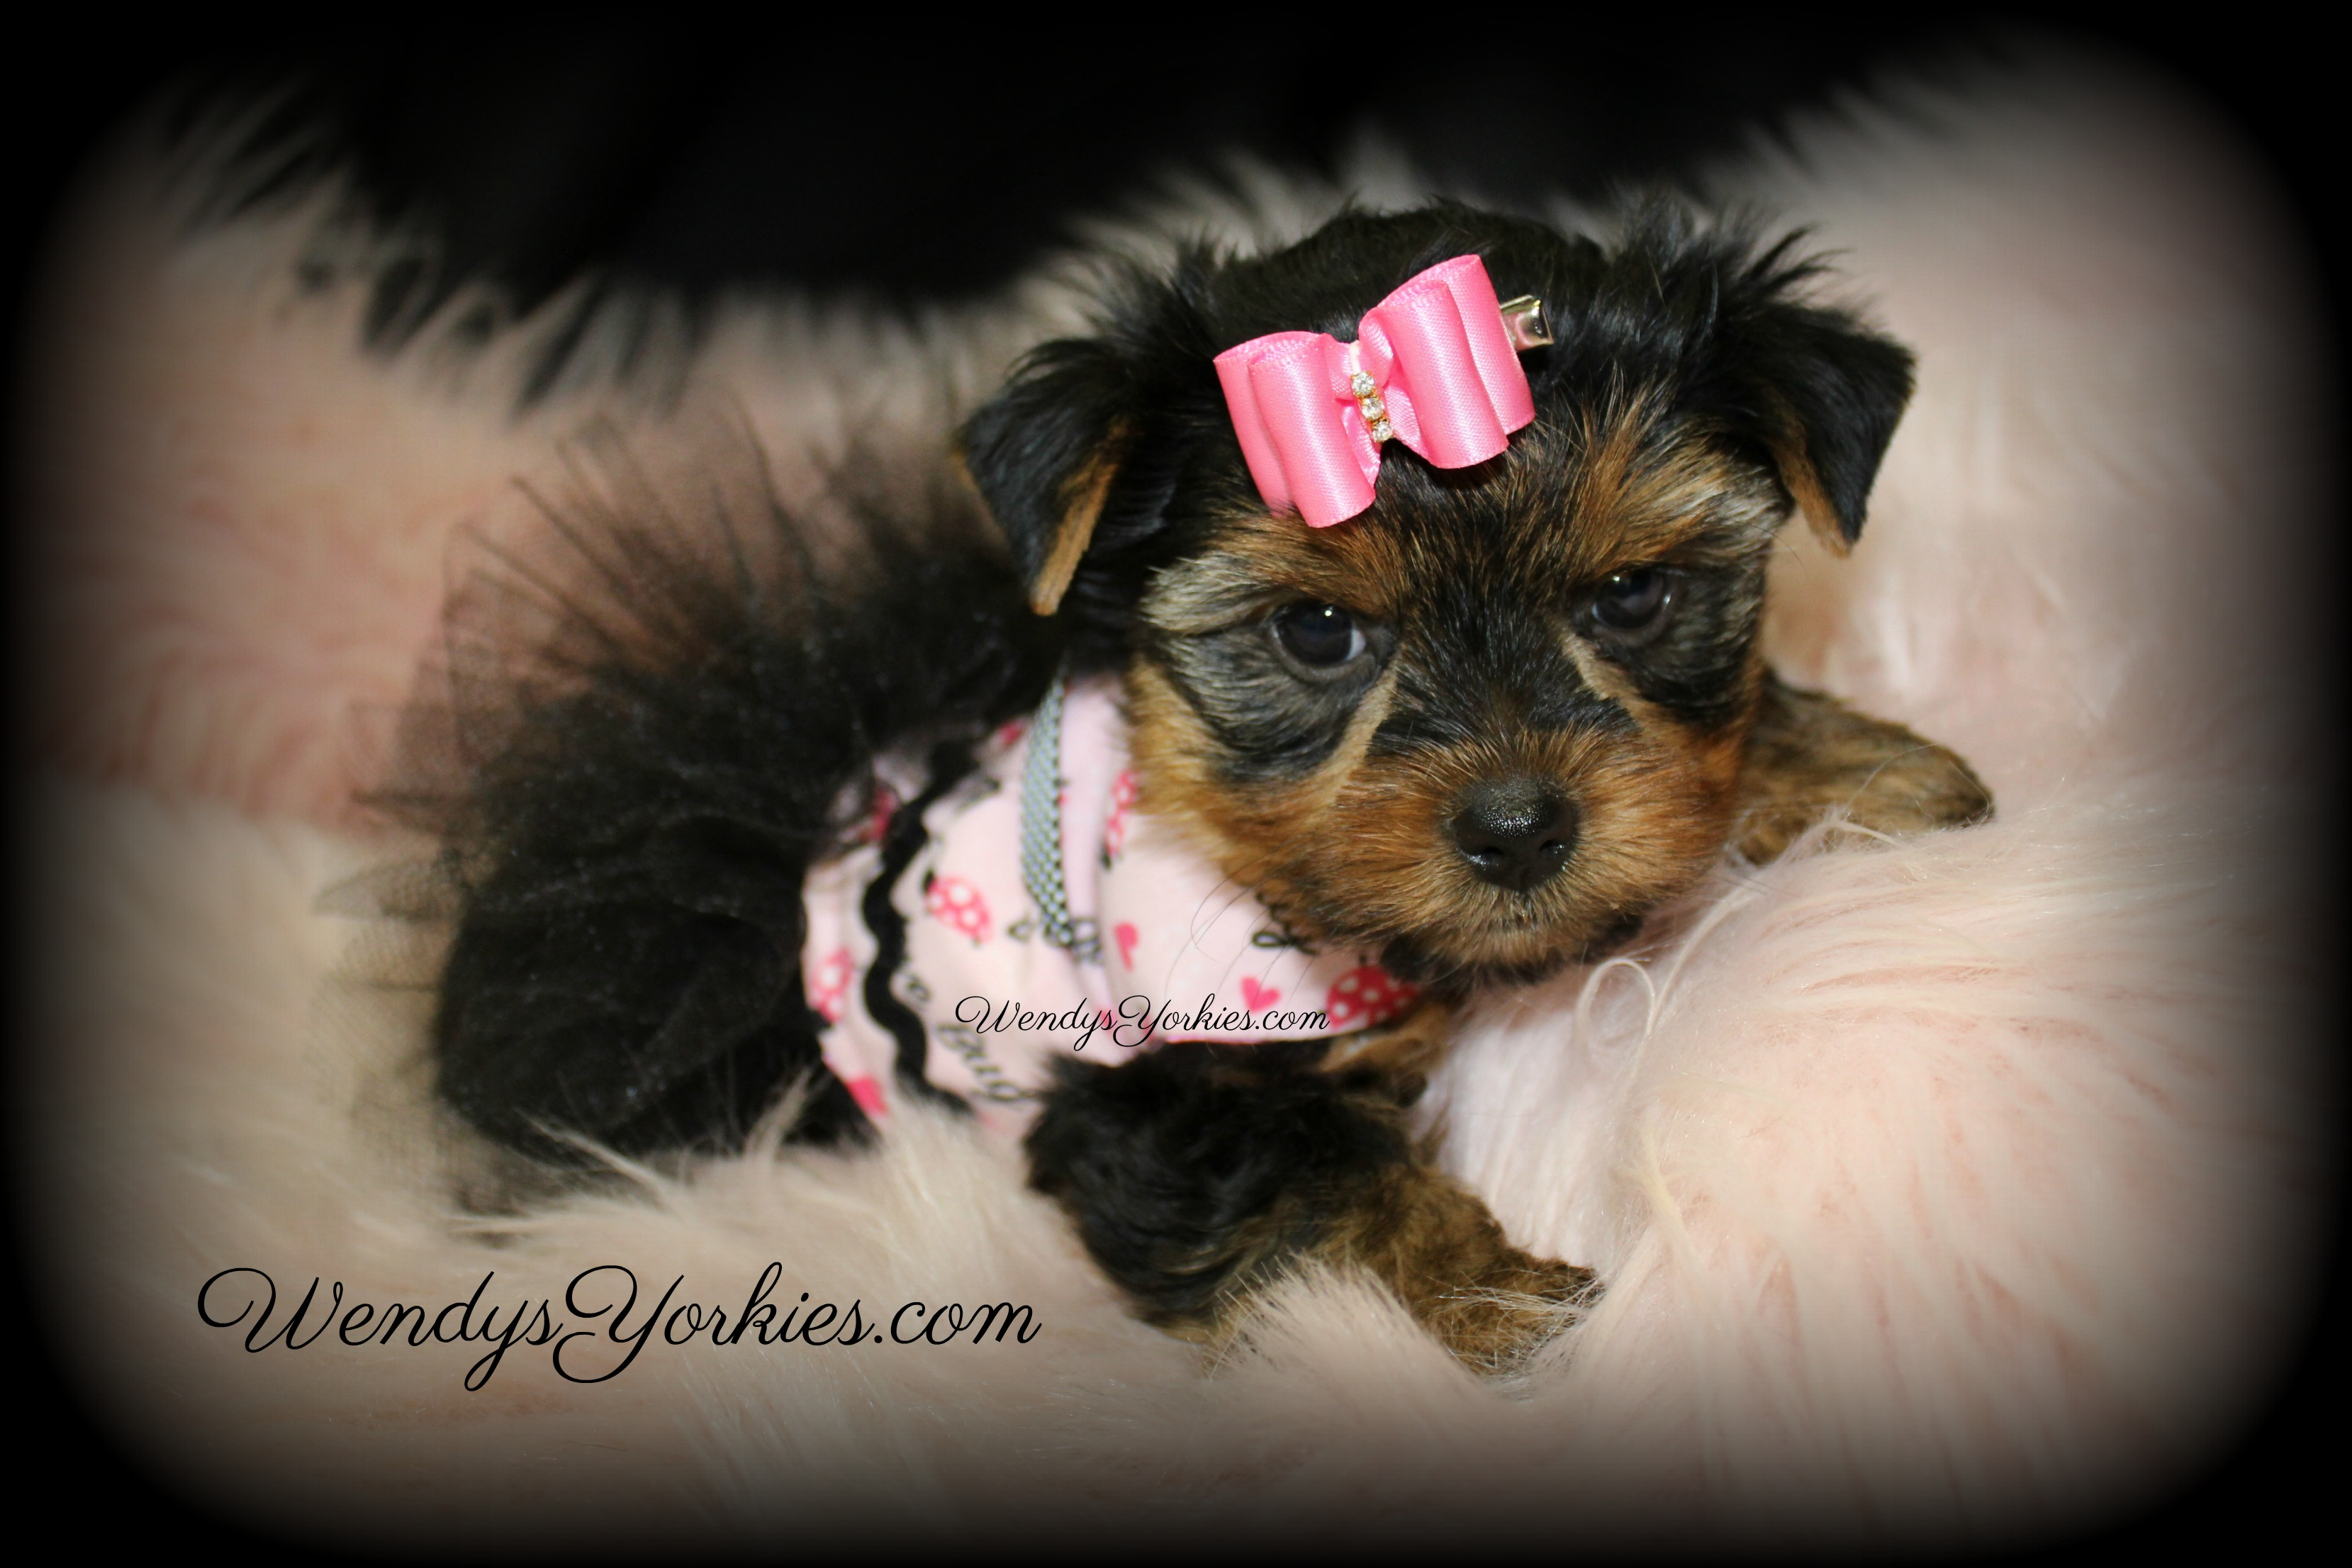 Teacup Female Yorkie puppy for sale, WendysYorkies.com, Loulou f2